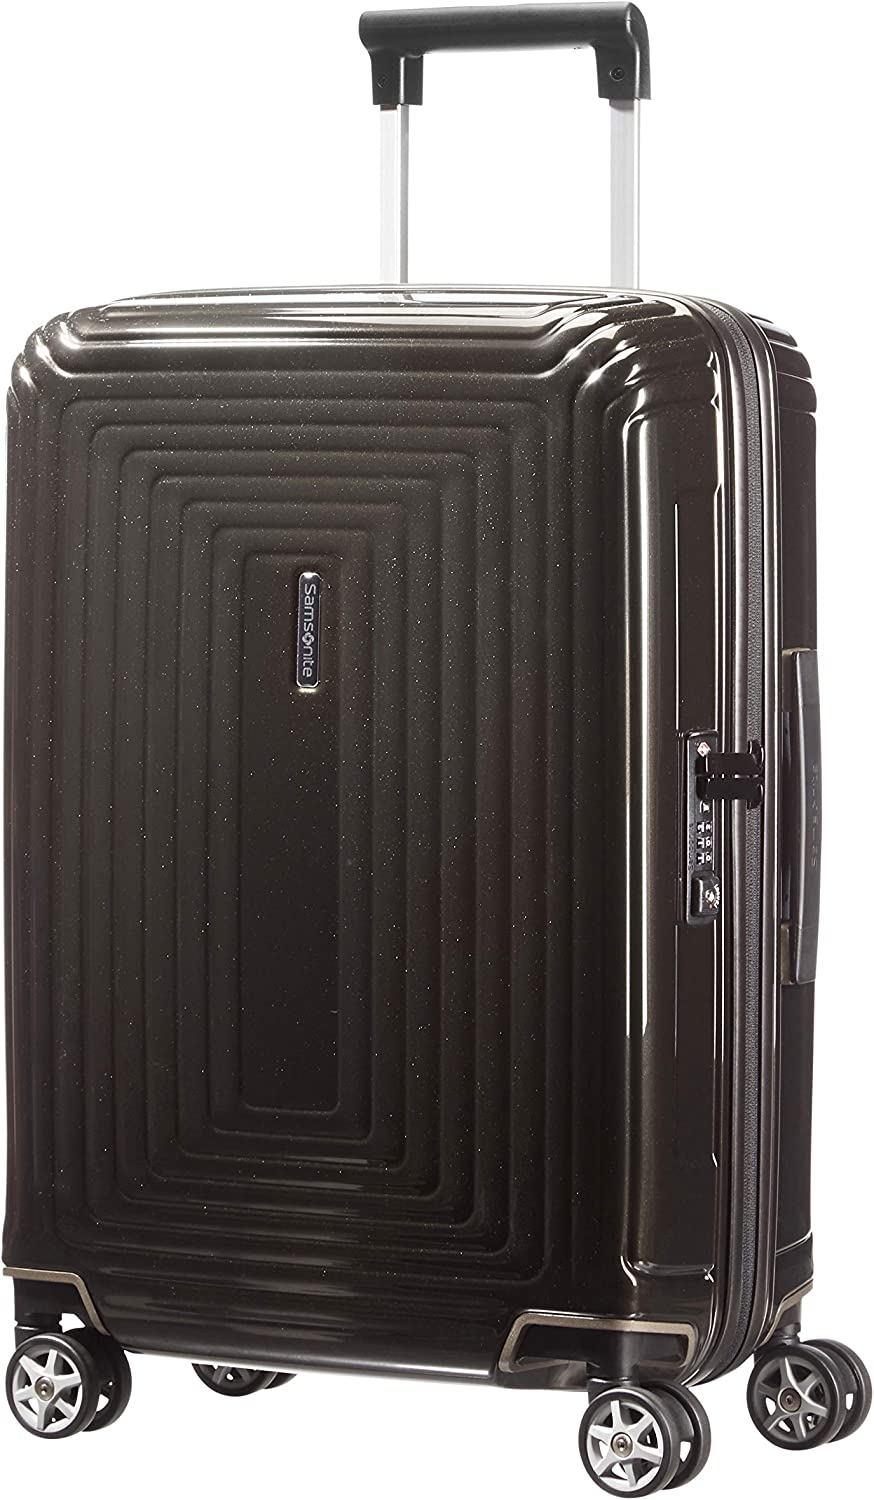 Samsonite Neopulse - Spinner S (Ancho: 20 cm) Maleta, 55 cm, 38 L, Negro (Metallic Black)